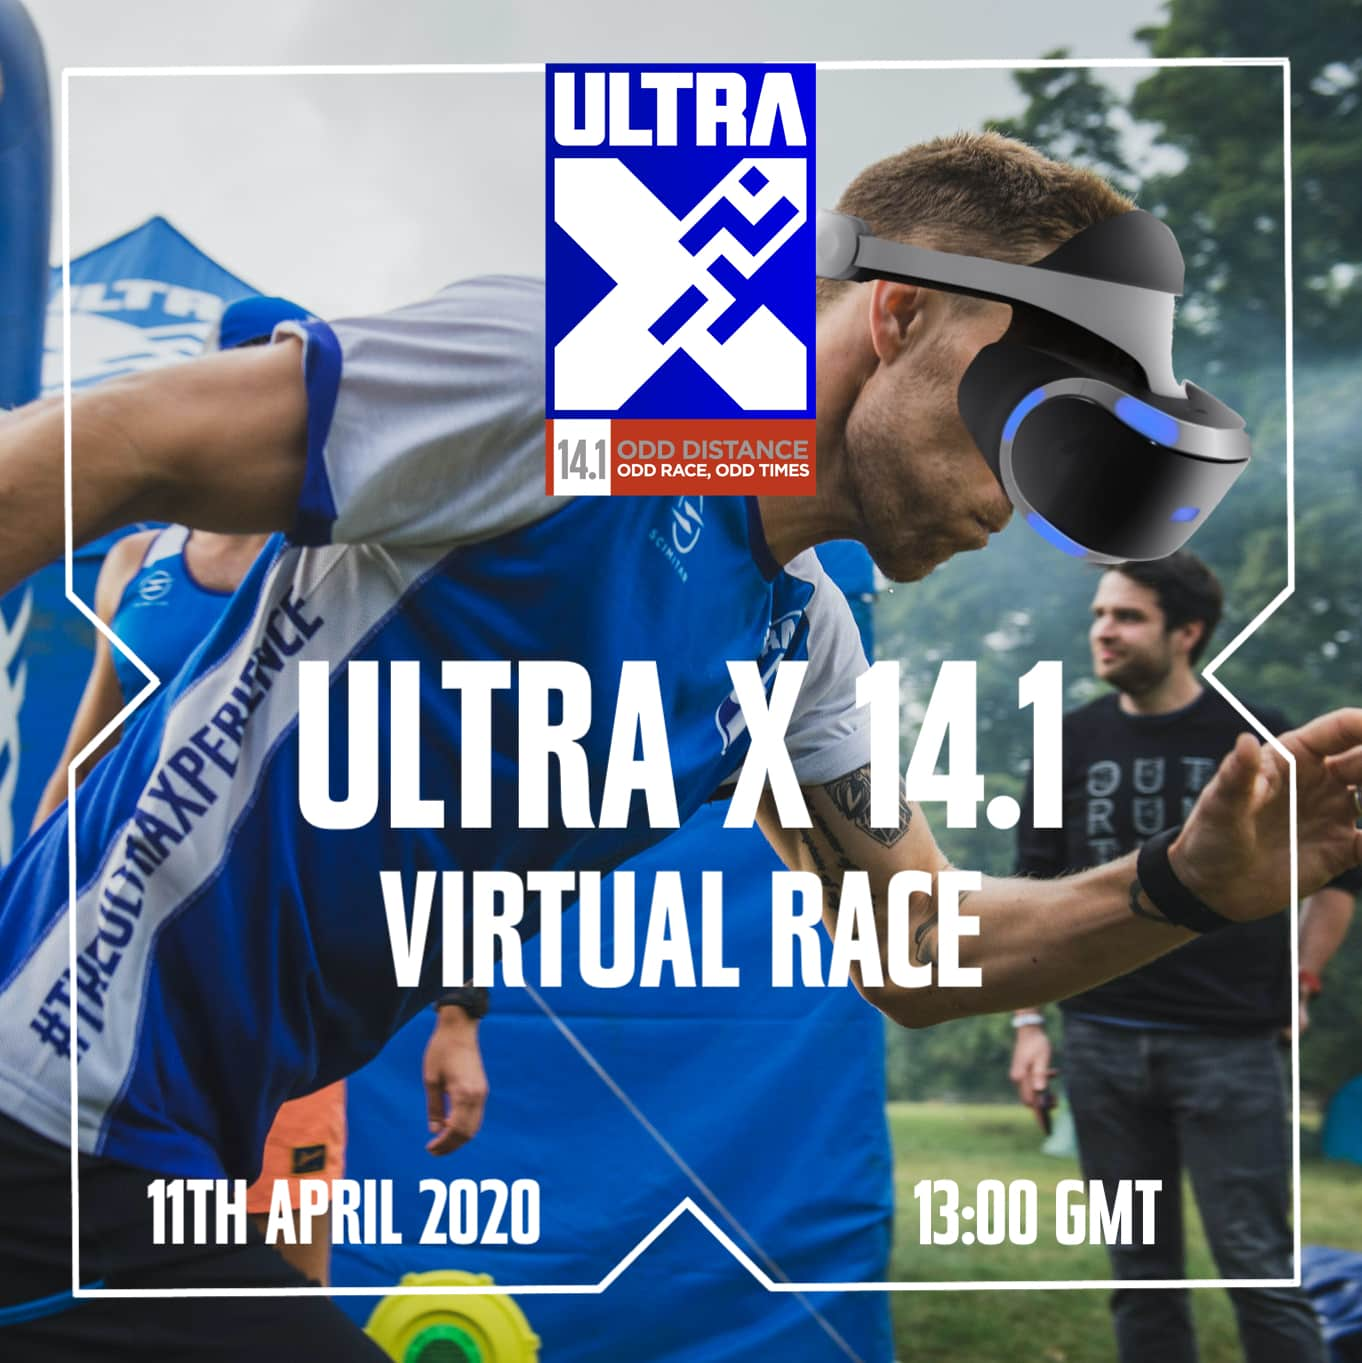 ultra x 14.1 virtual race worldwide